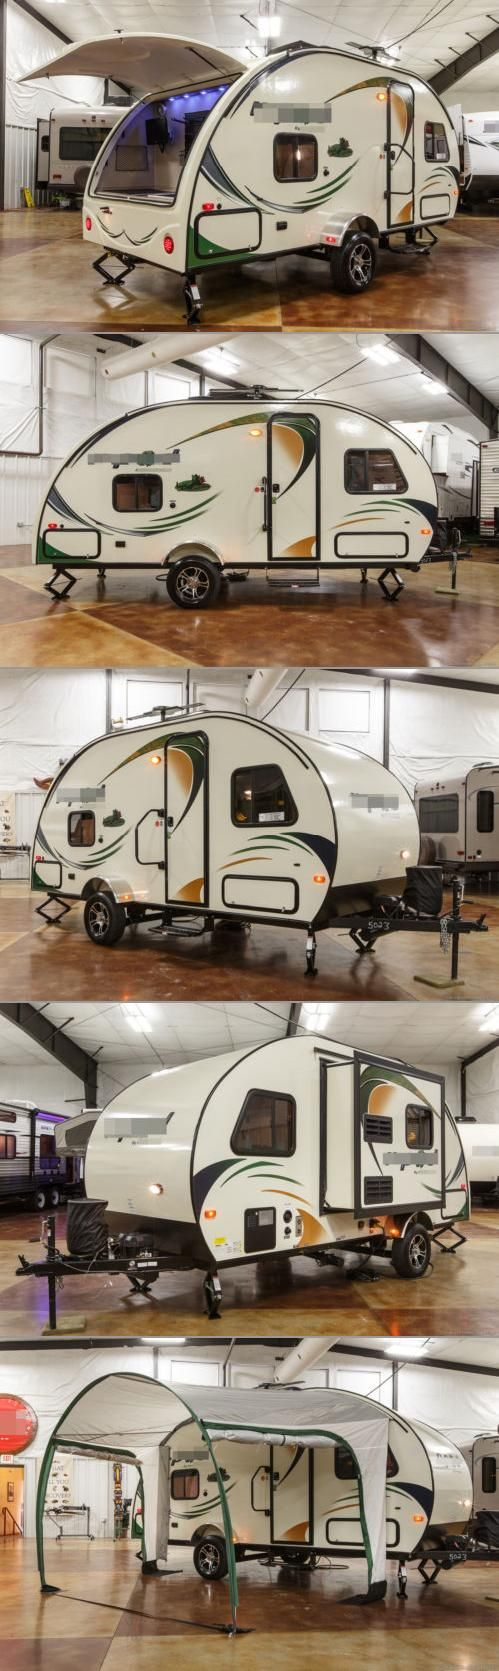 Want to get away from it all, and take it with you? You can with a bunkhouse travel trailer. Fully heated, with a/c, tons of storage, a full kitchen and bath all built to let you make the most of every weekend!